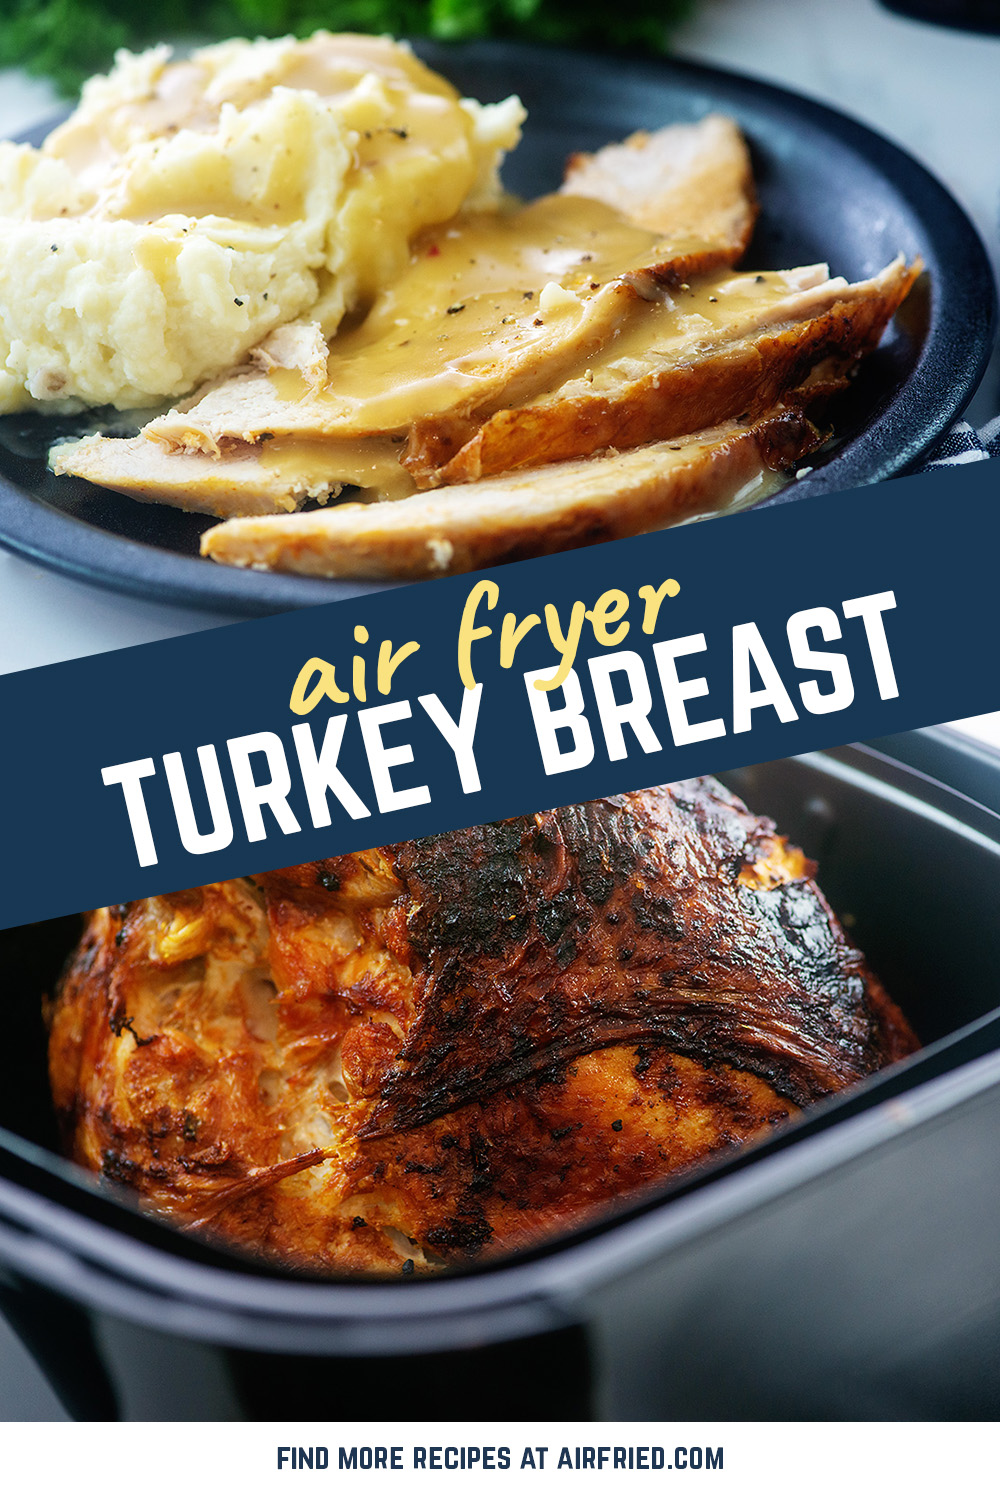 This turkey breast was moist and the skin seasoned wonderfully!  The air fryer is the way to go! #thanksgiving #recipes #airfried